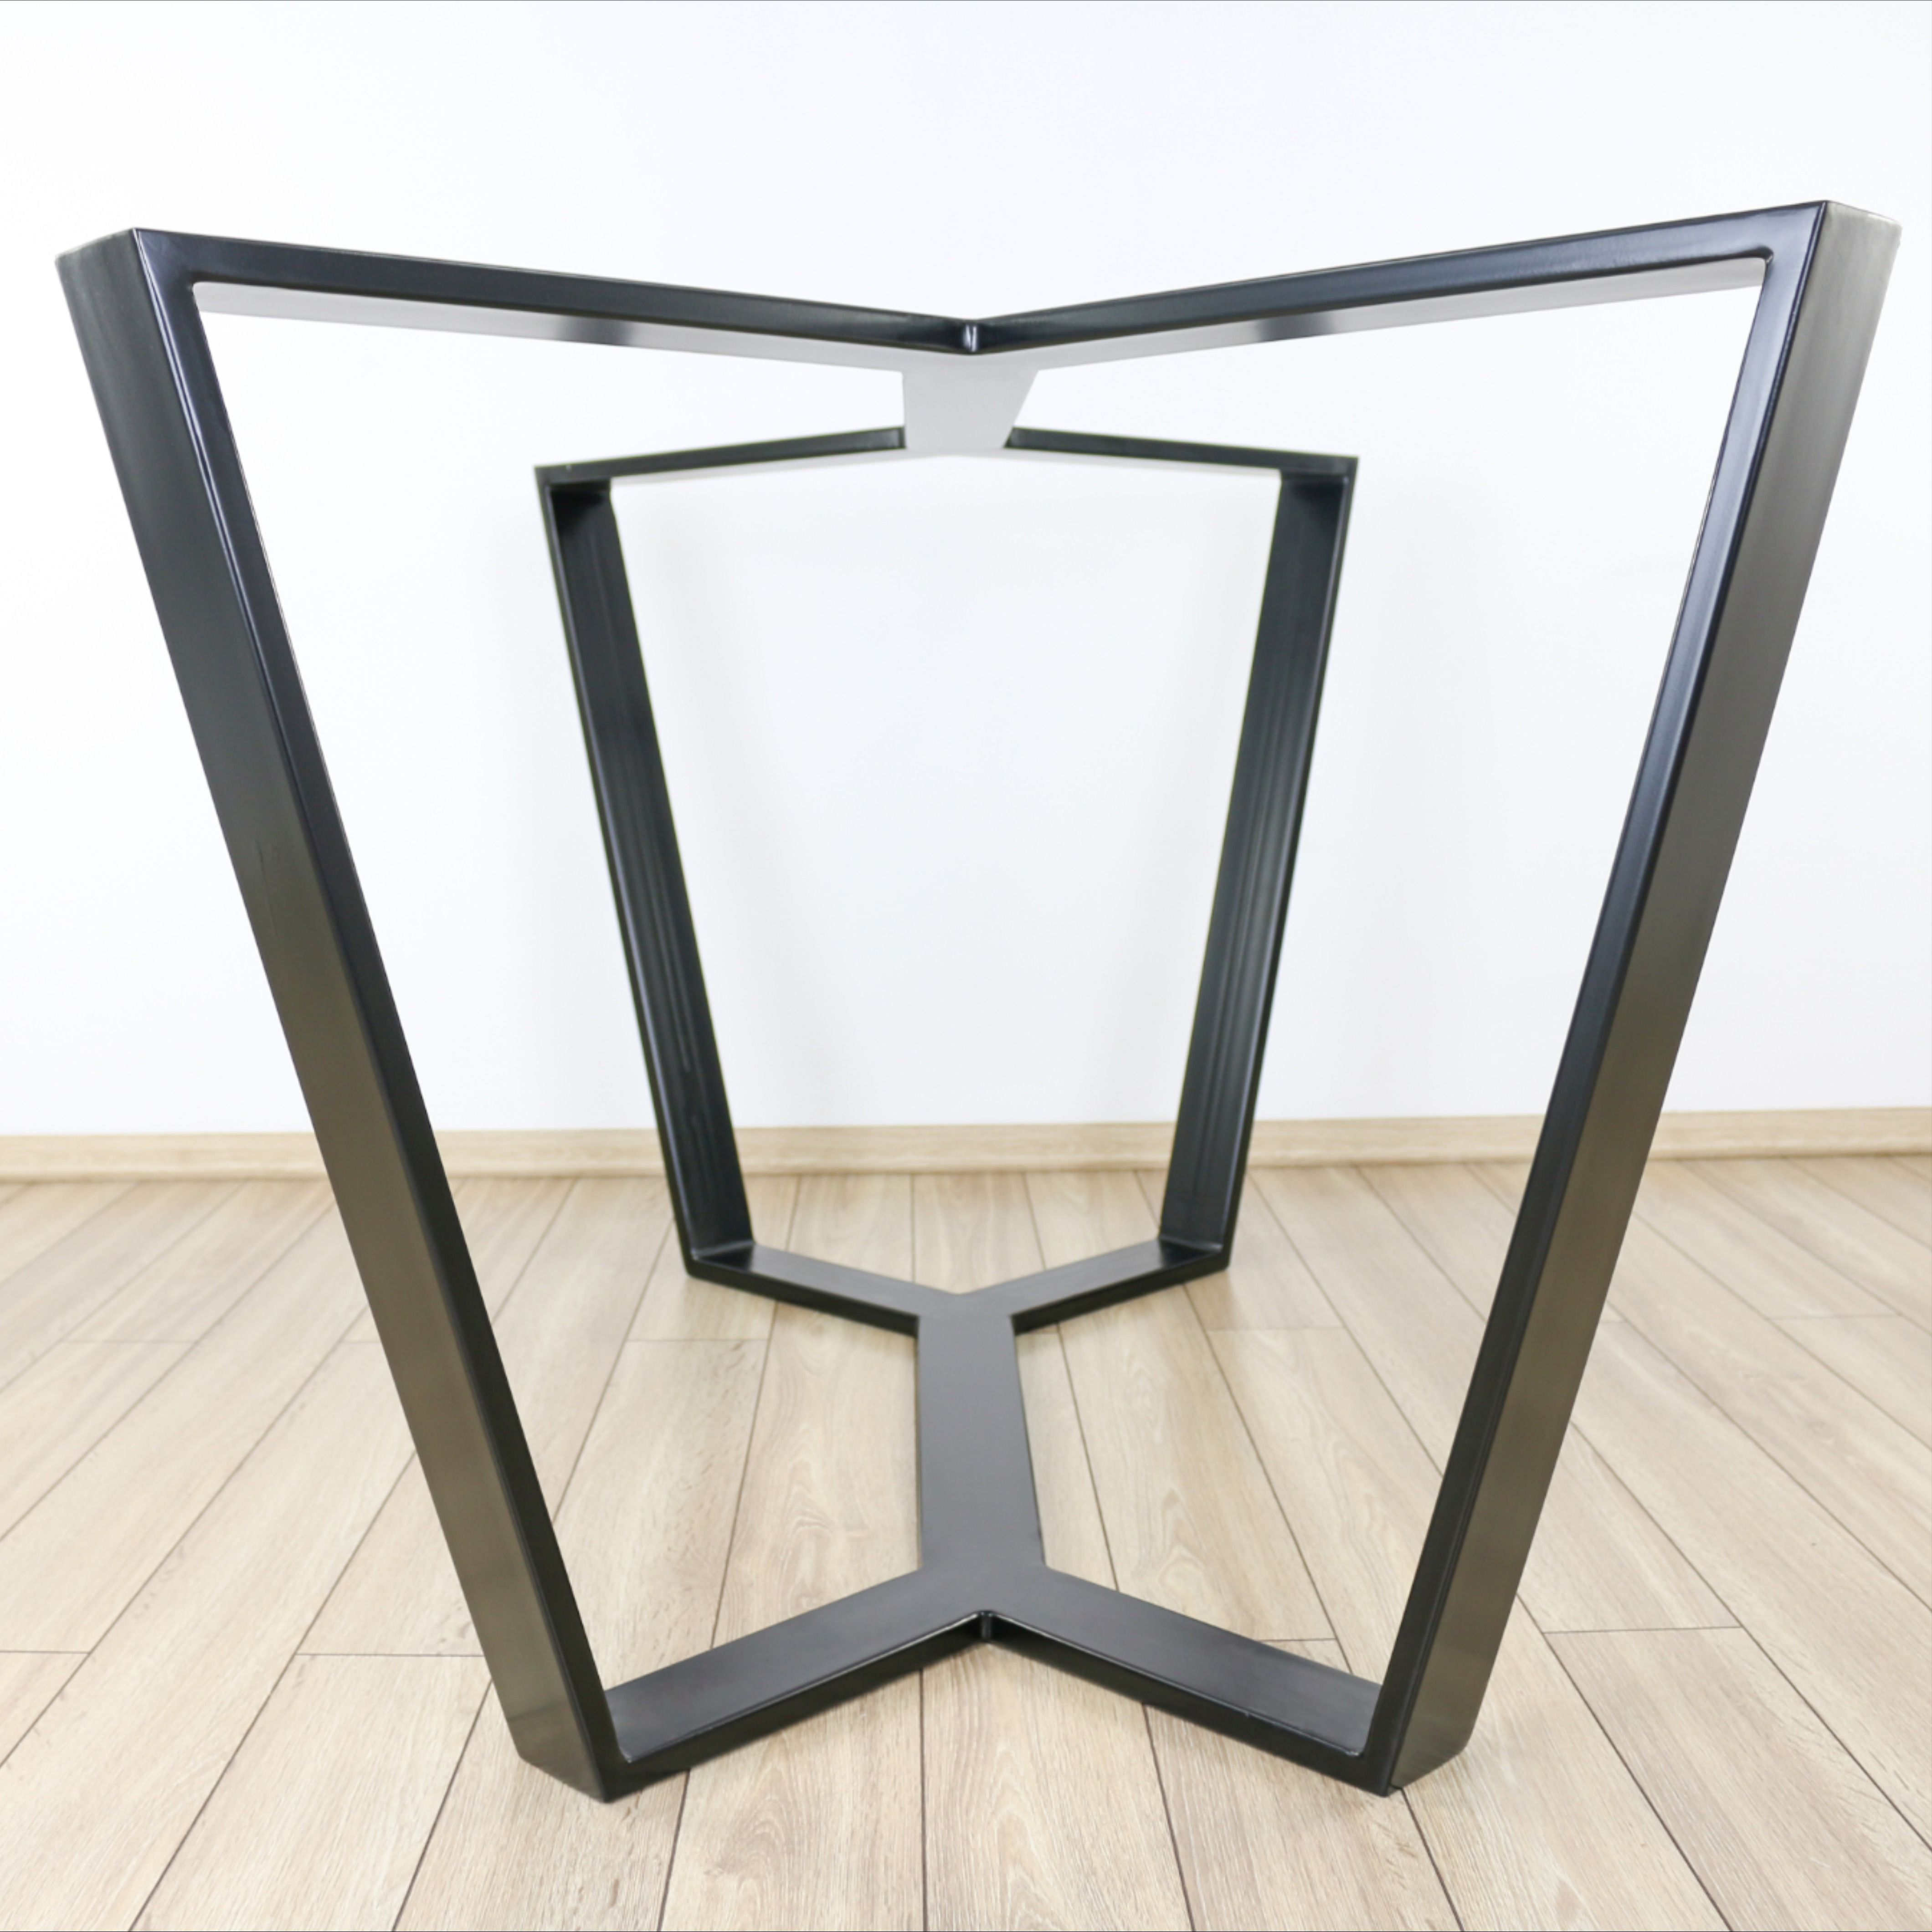 Steel Table Base Dining Table Base Industrial Steel Table Leg Modern Table Base Unique Metal Table Frame For Glass Wood Marble Quartz Steel Table Base Metal Table Base Steel Table